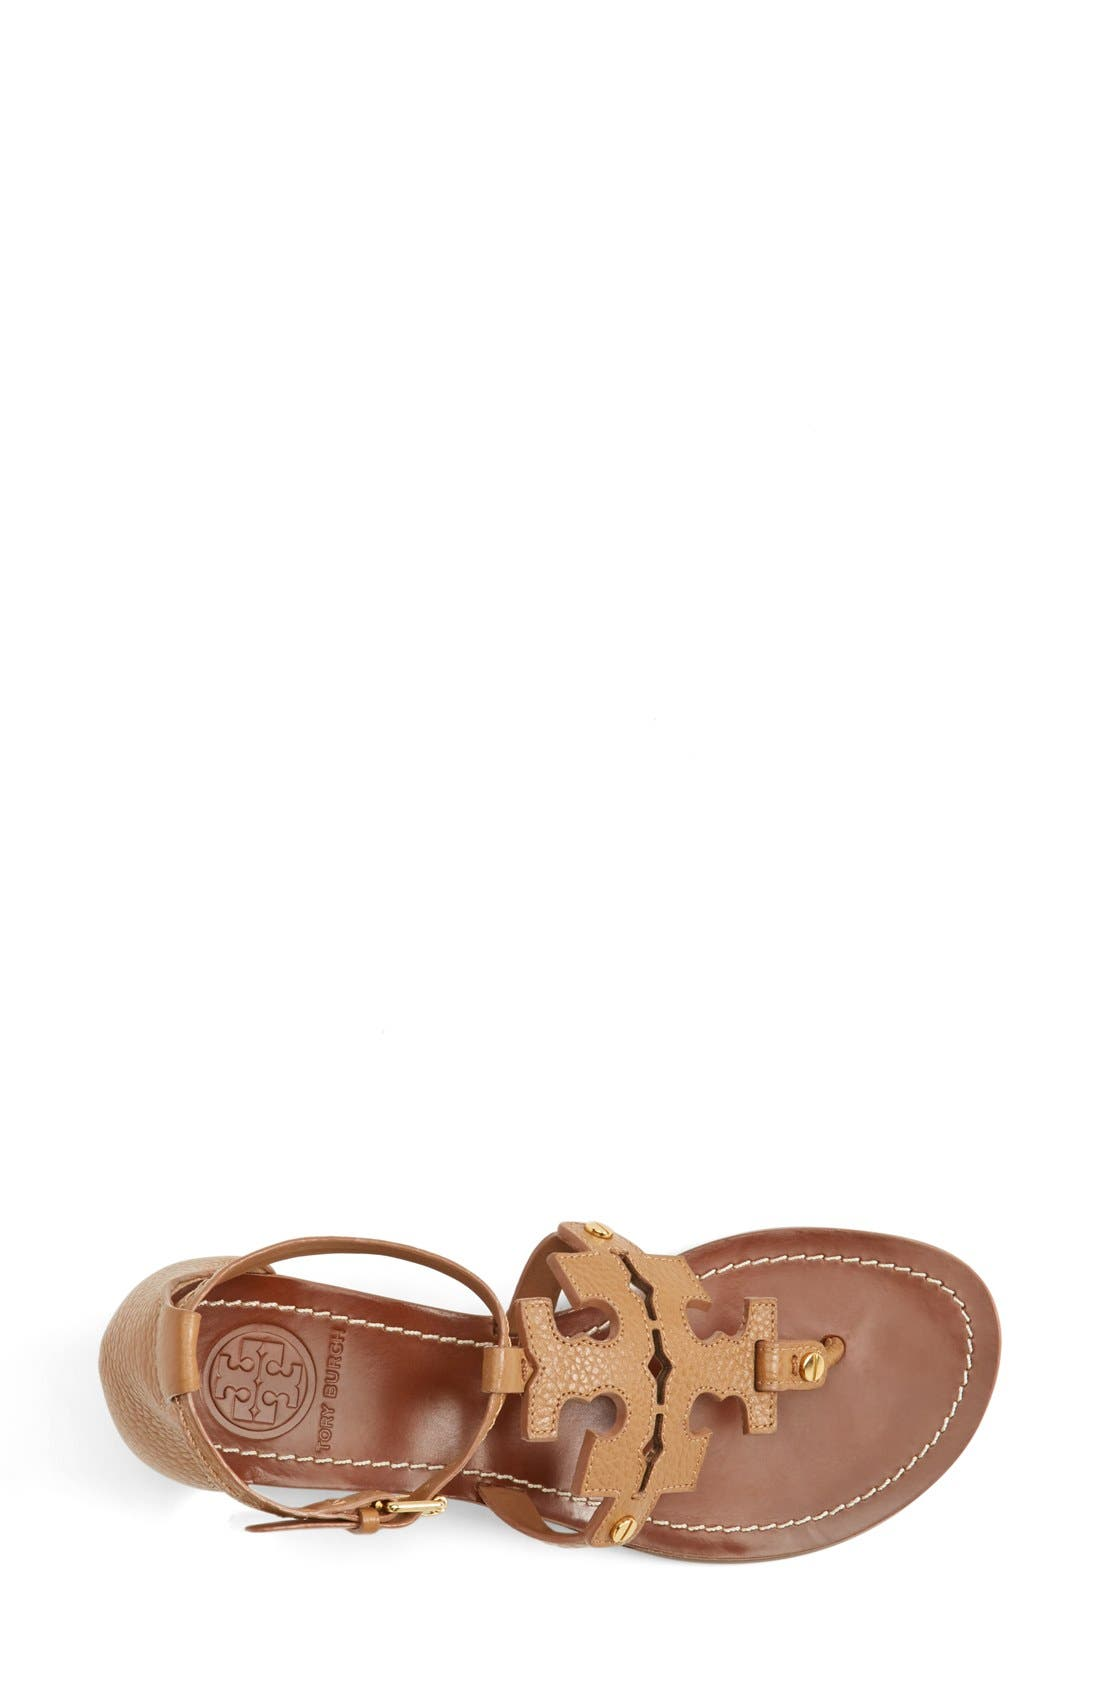 Alternate Image 3  - Tory Burch 'Chandler' Wedge Leather Sandal (Women)